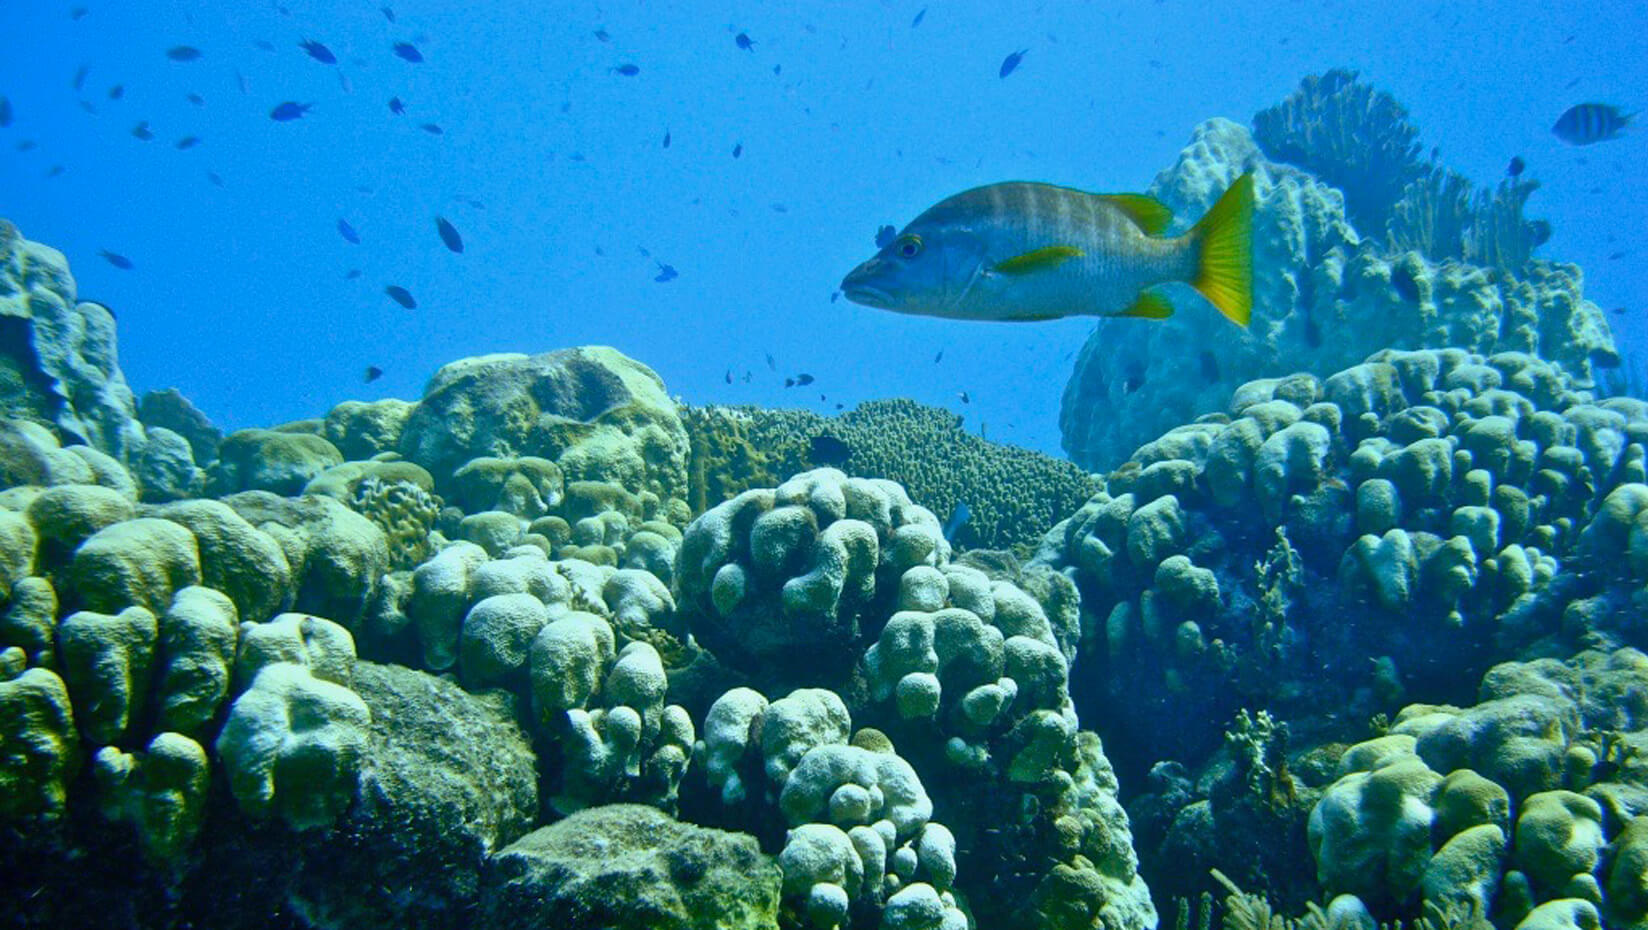 Fish and a coral reef